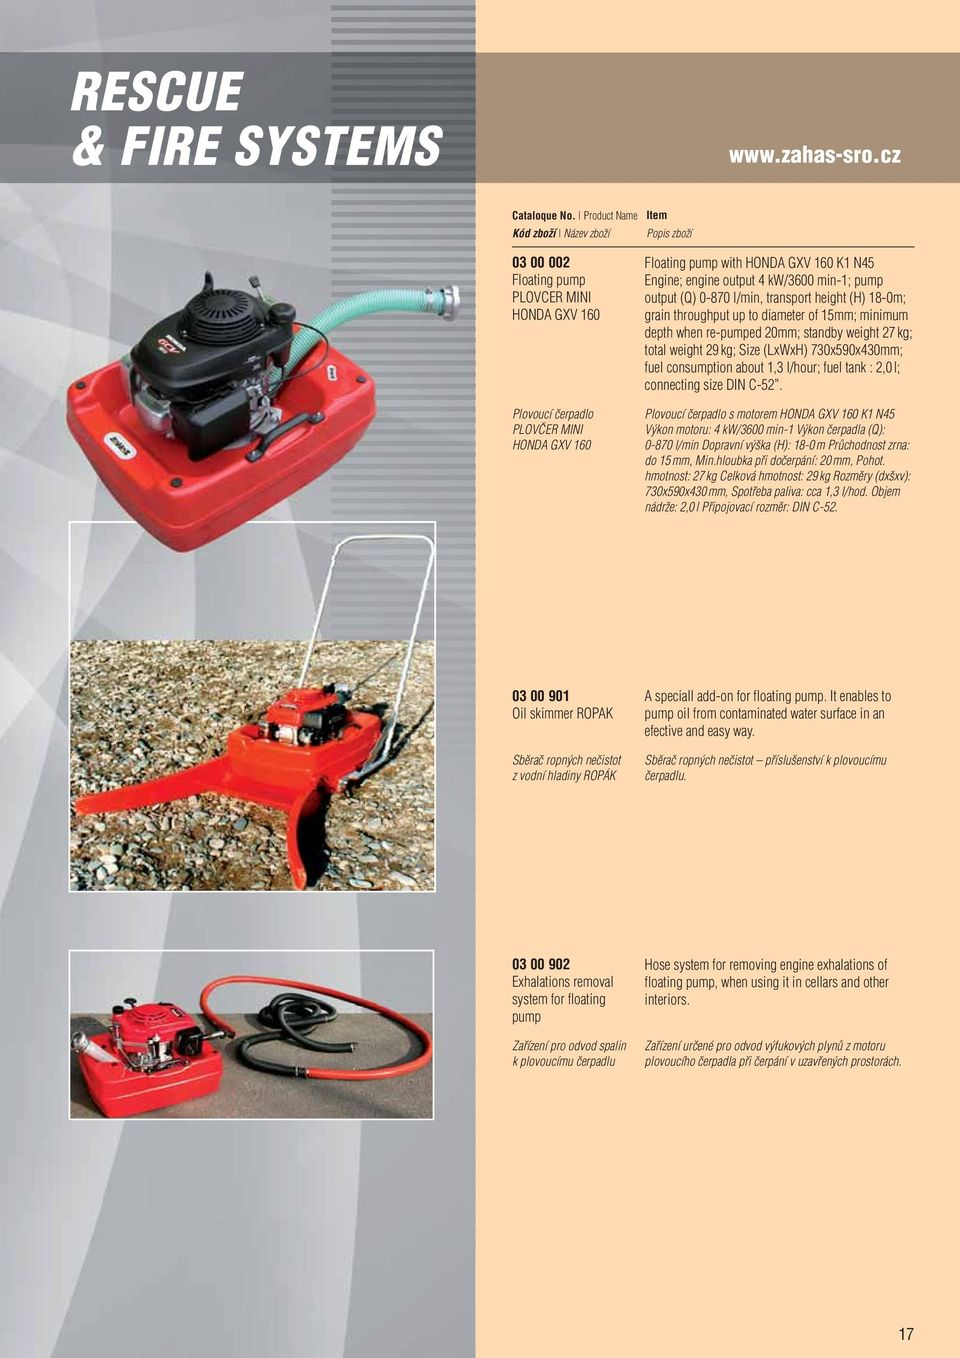 l/min, transport height (H) 18-0m; grain throughput up to diameter of 15mm; minimum depth when re-pumped 20mm; standby weight 27 kg; total weight 29 kg; Size (LxWxH) 730x590x430mm; fuel consumption